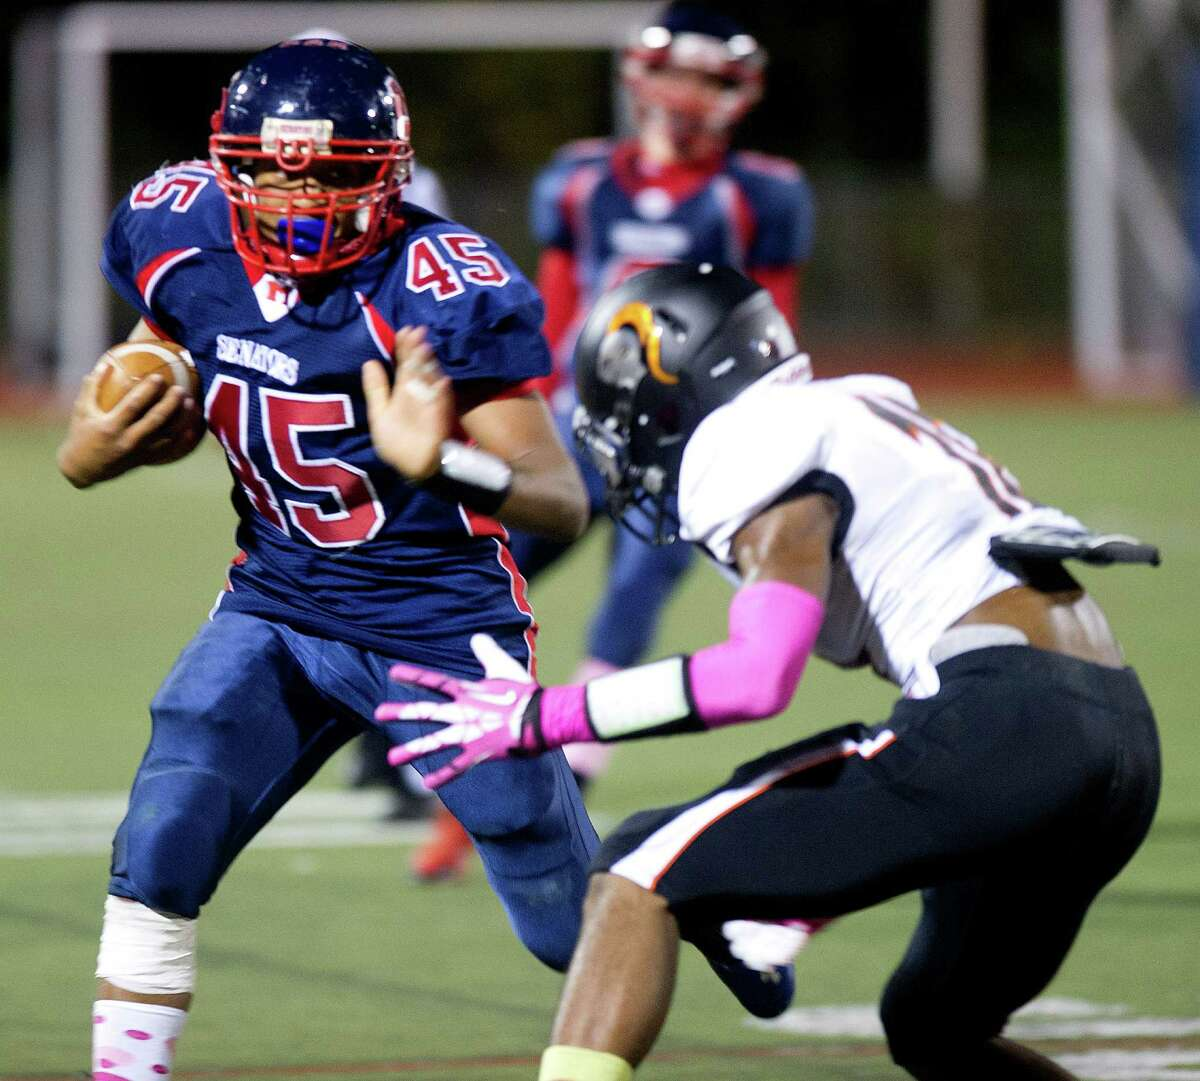 Brien McMahon's Kenneth Keen carries the ball during Friday's football game in Norwalk, Conn., on October 18, 2013.